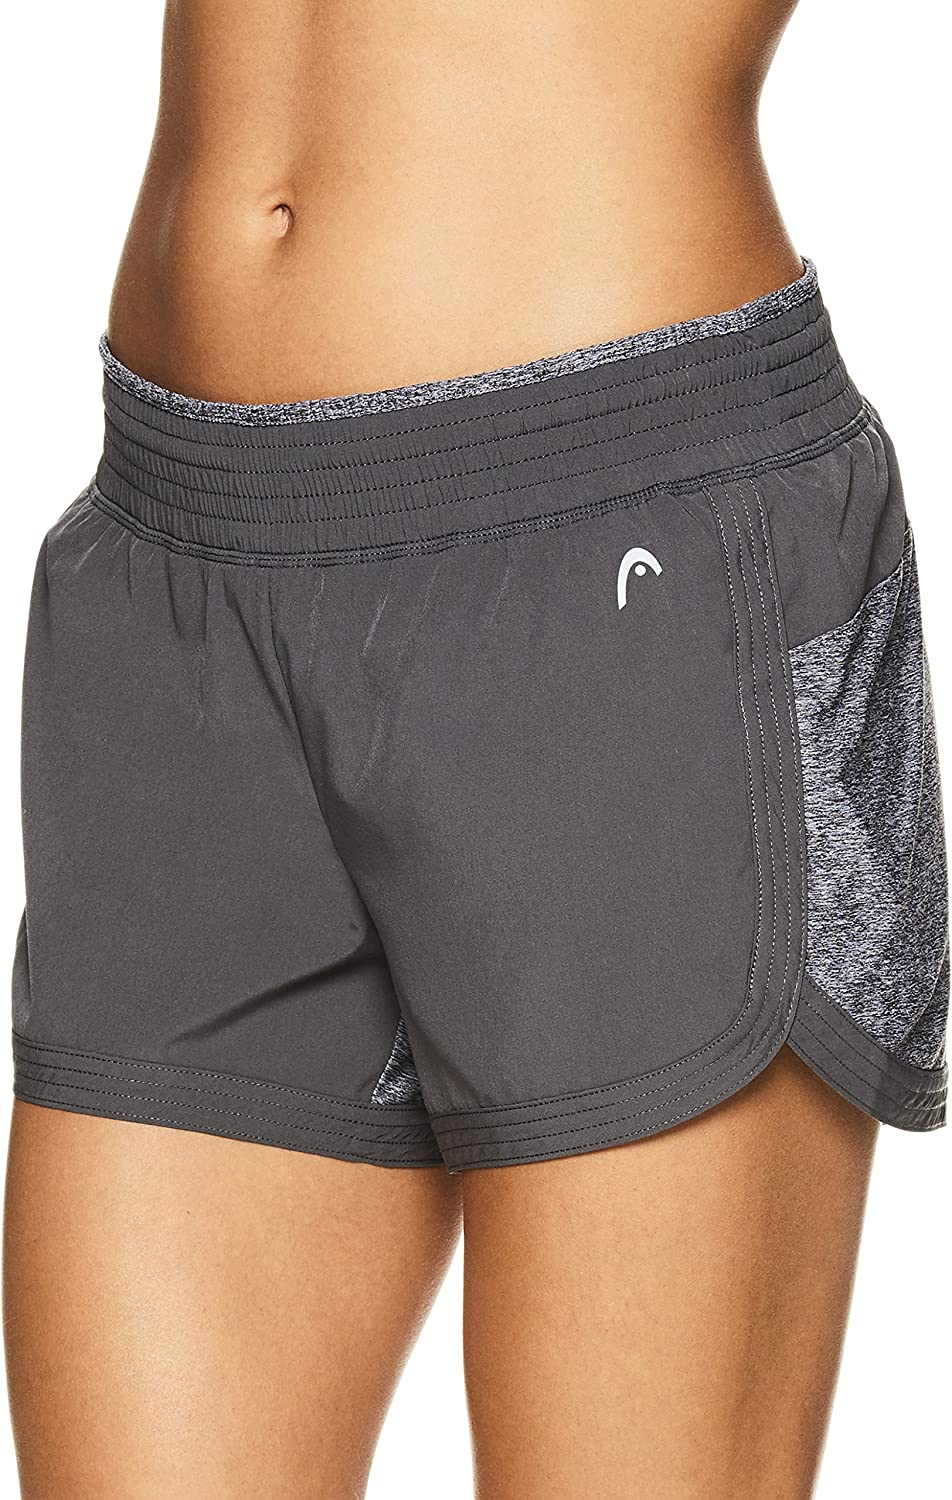 HEAD Women's Athletic Workout Shorts  Polyester Gym Training & Running Short